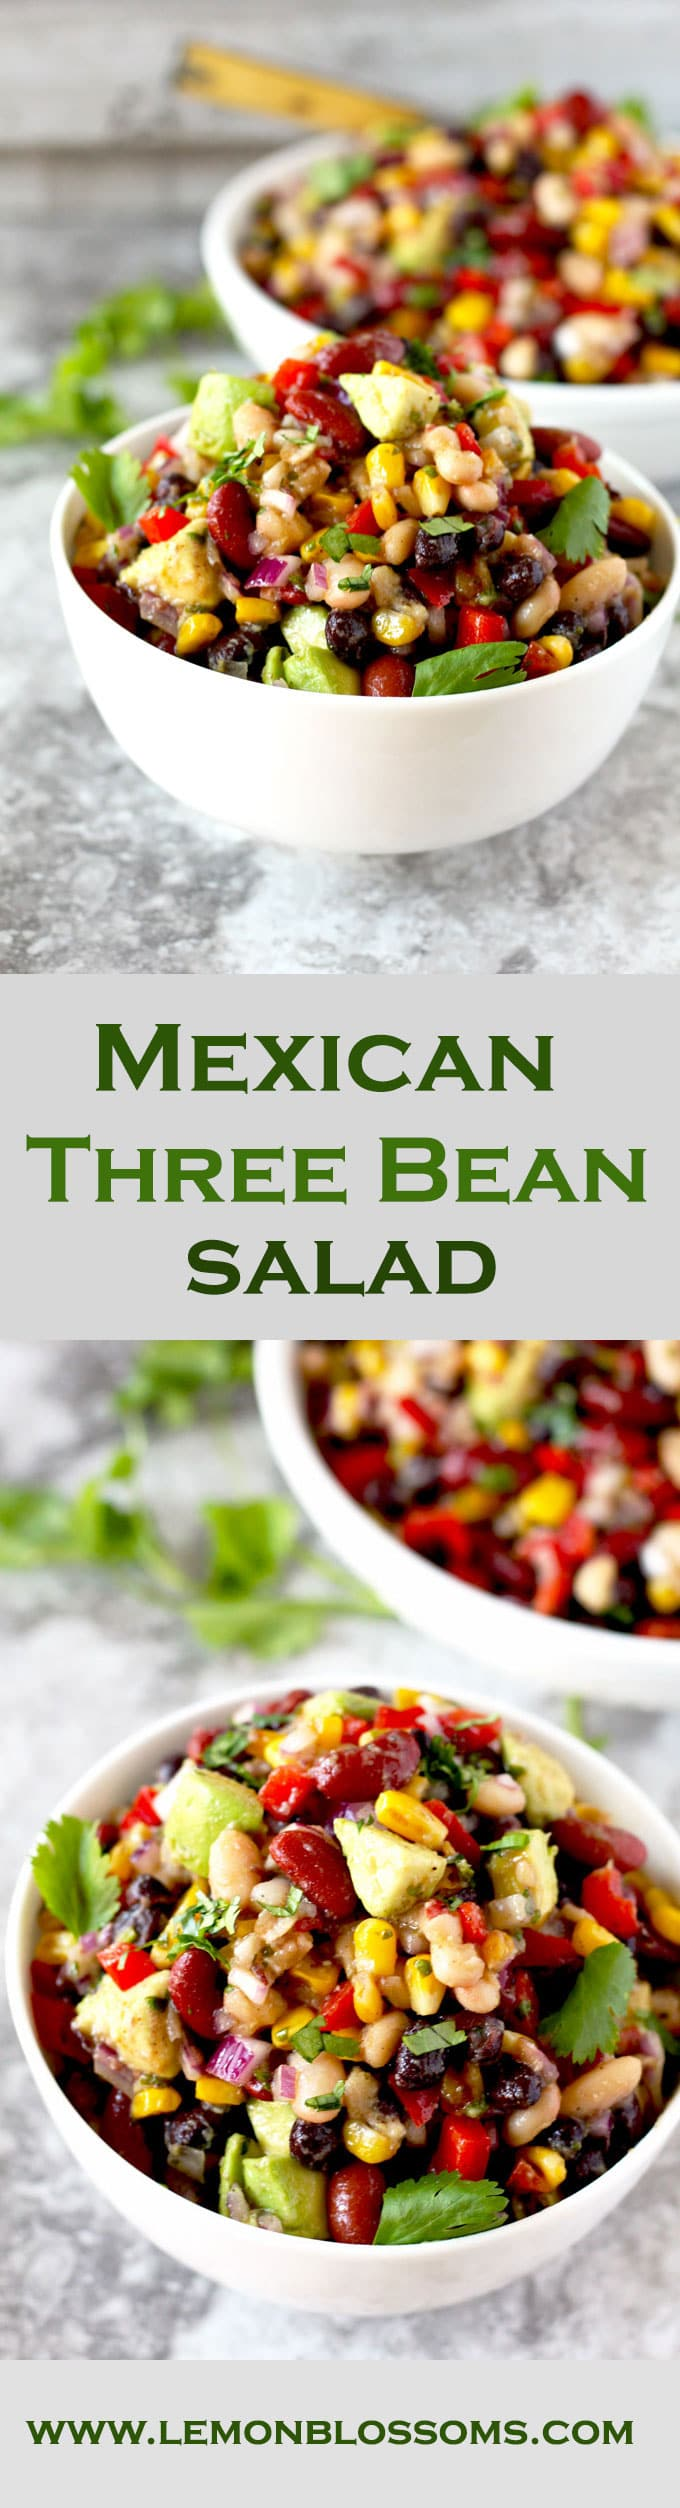 This protein-rich Mexican Three Bean Salad is loaded with southwestern flavors. Quick, easy and the perfect make-ahead dish to serve when you have company, at parties or potlucks.